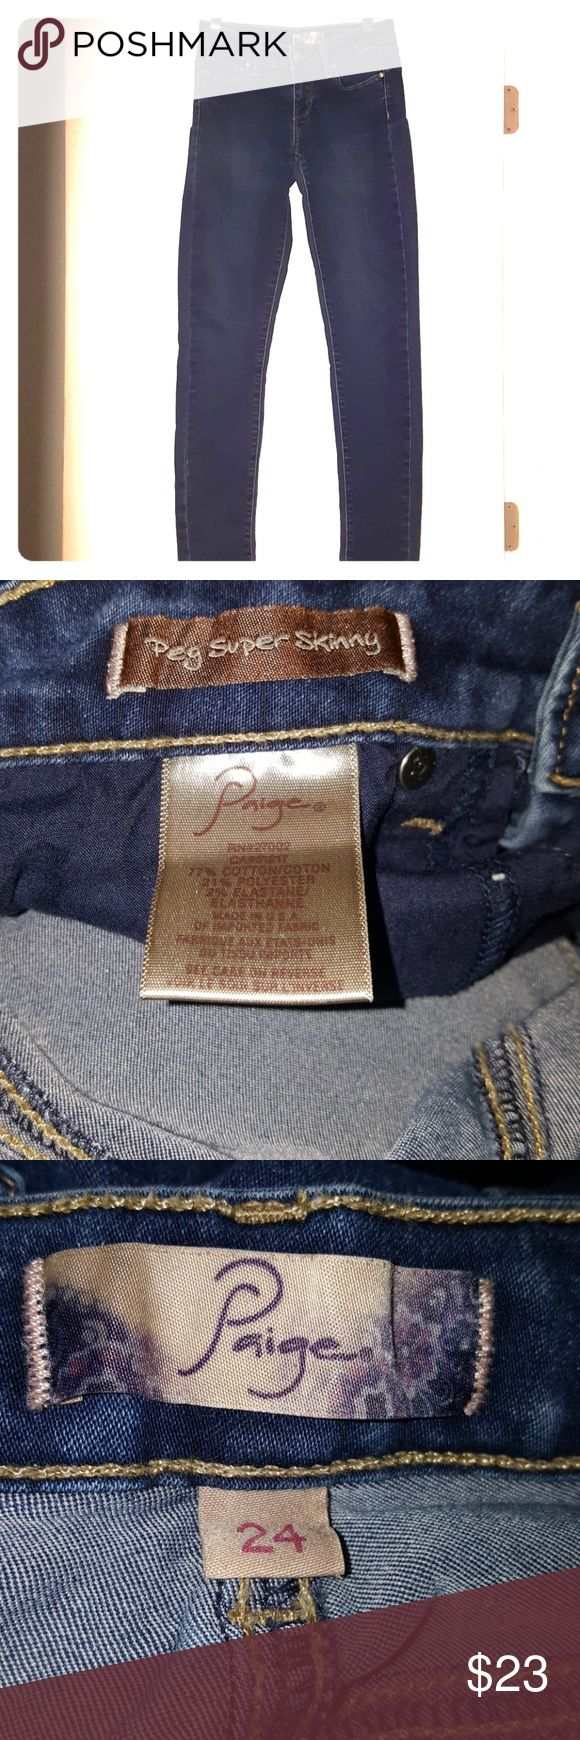 Paige Dark Wash Peg Super Skinny Jeans Excellent condition no flaws .  Size 24 Inseam 29 Paige Jeans Jeans Skinny